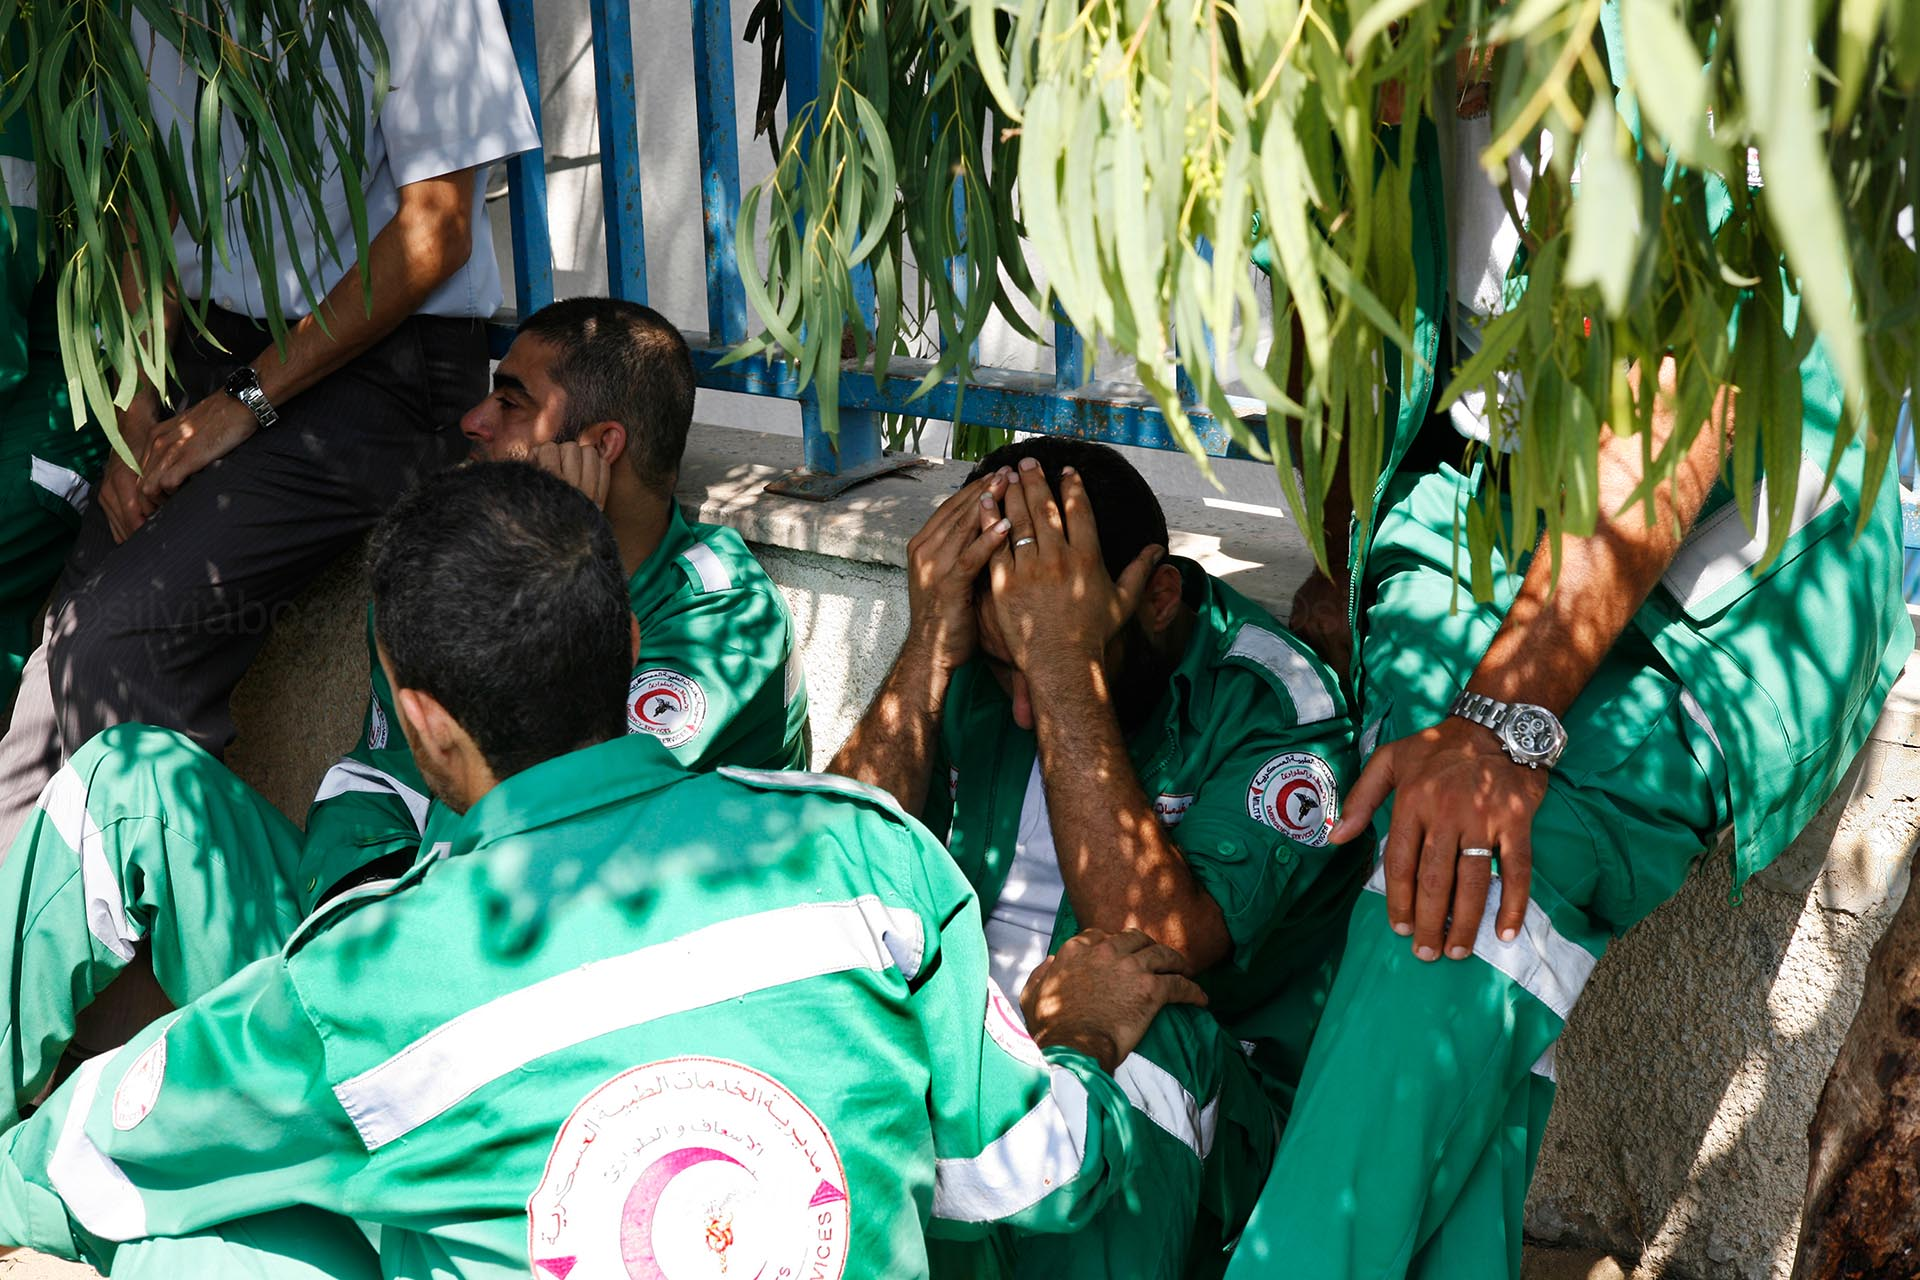 Paramedics sit in shock under a tree outside Shifa hospital after bringing in corpses from Shujayea. Gaza, 20 July 2014